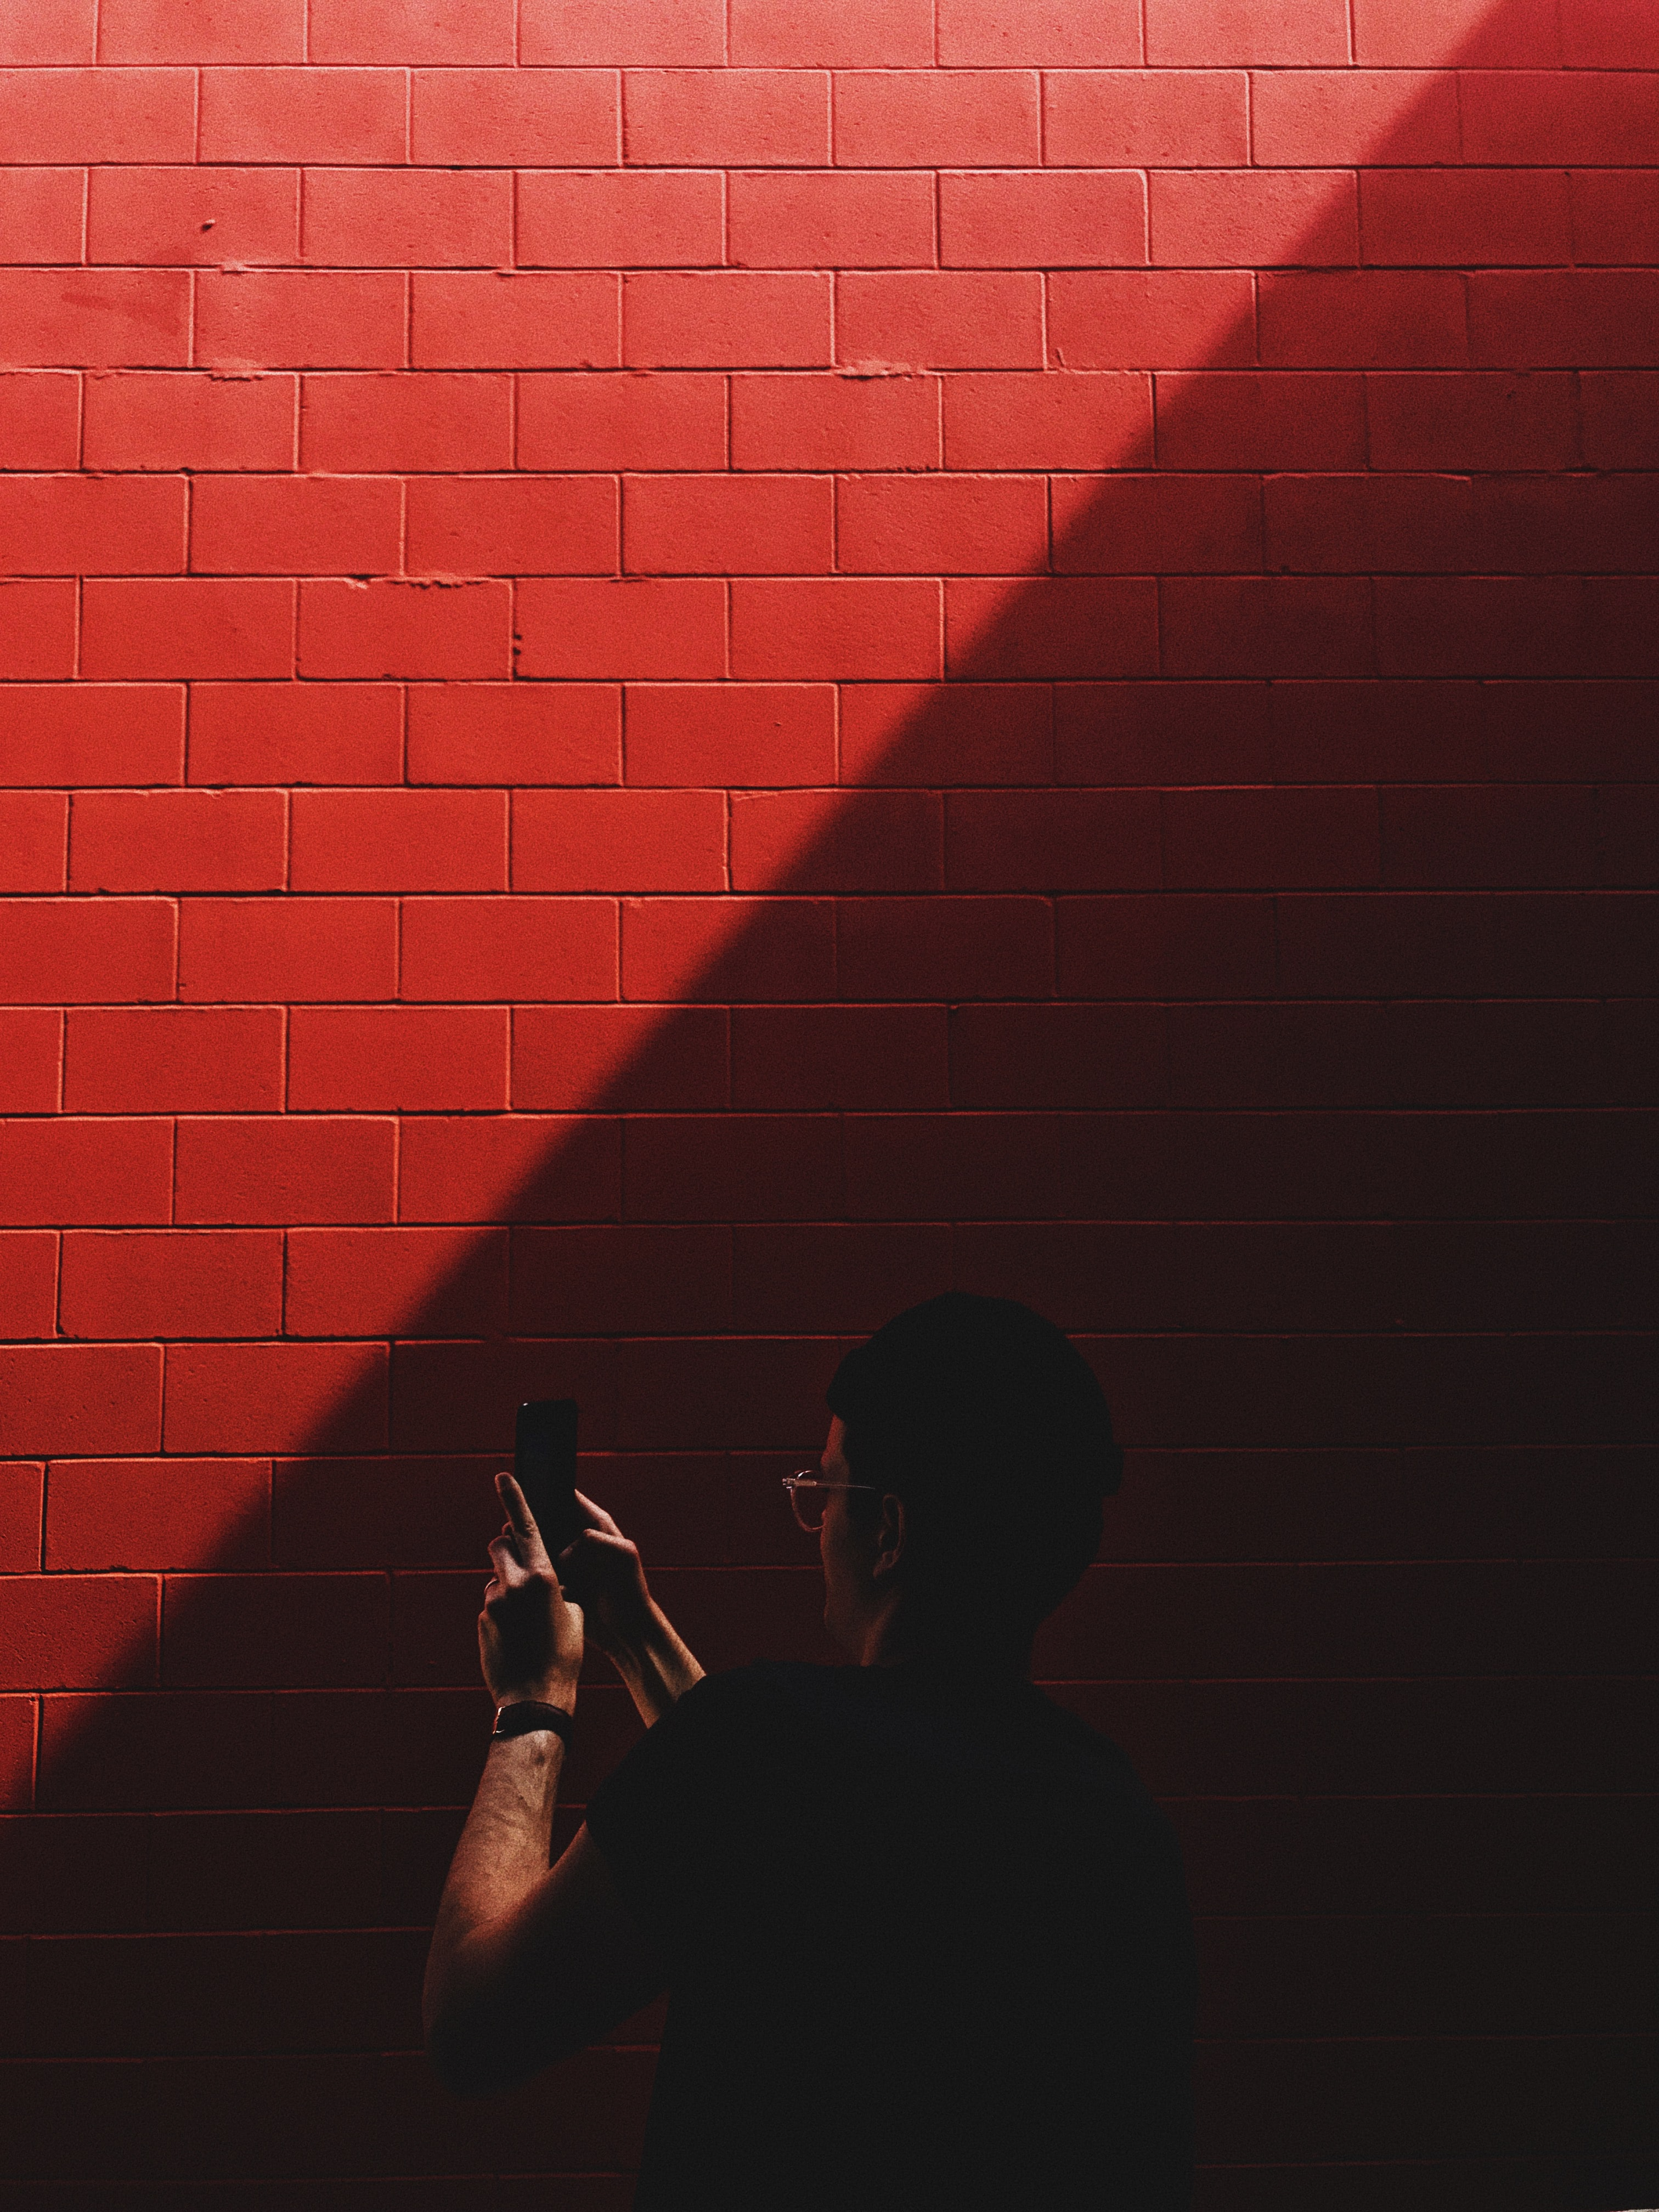 person capturing red brick